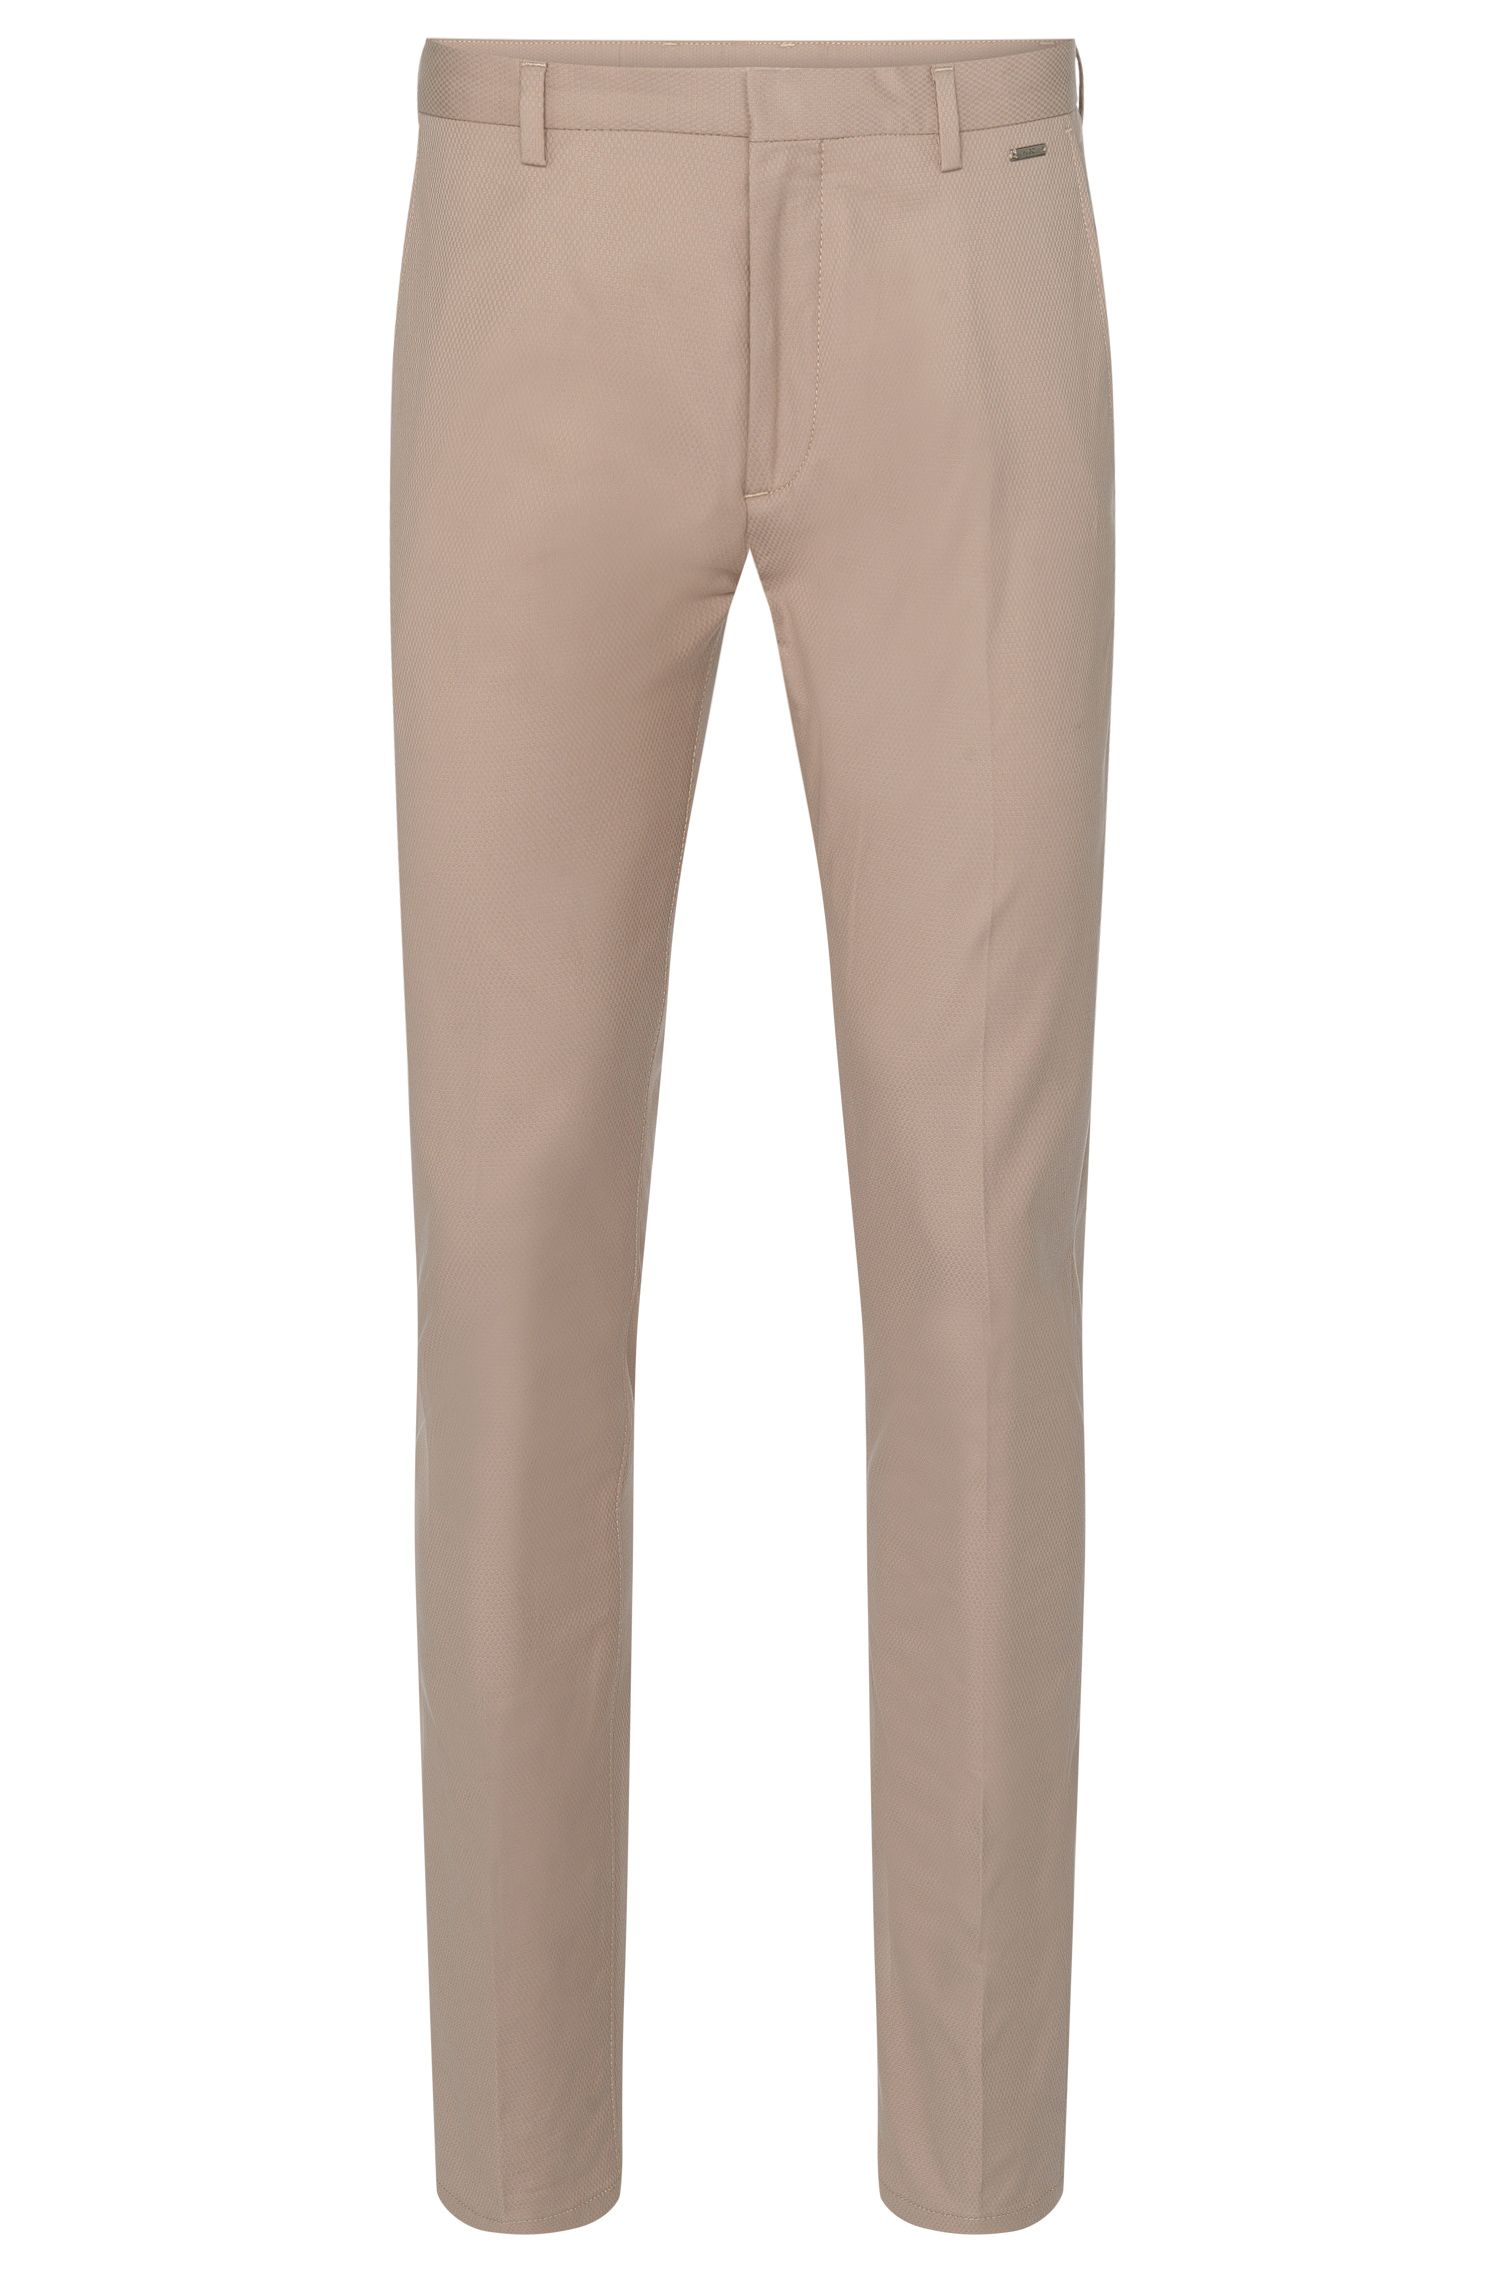 'Helgo'   Regular Fit, Stretch Cotton Blend Textured Trousers